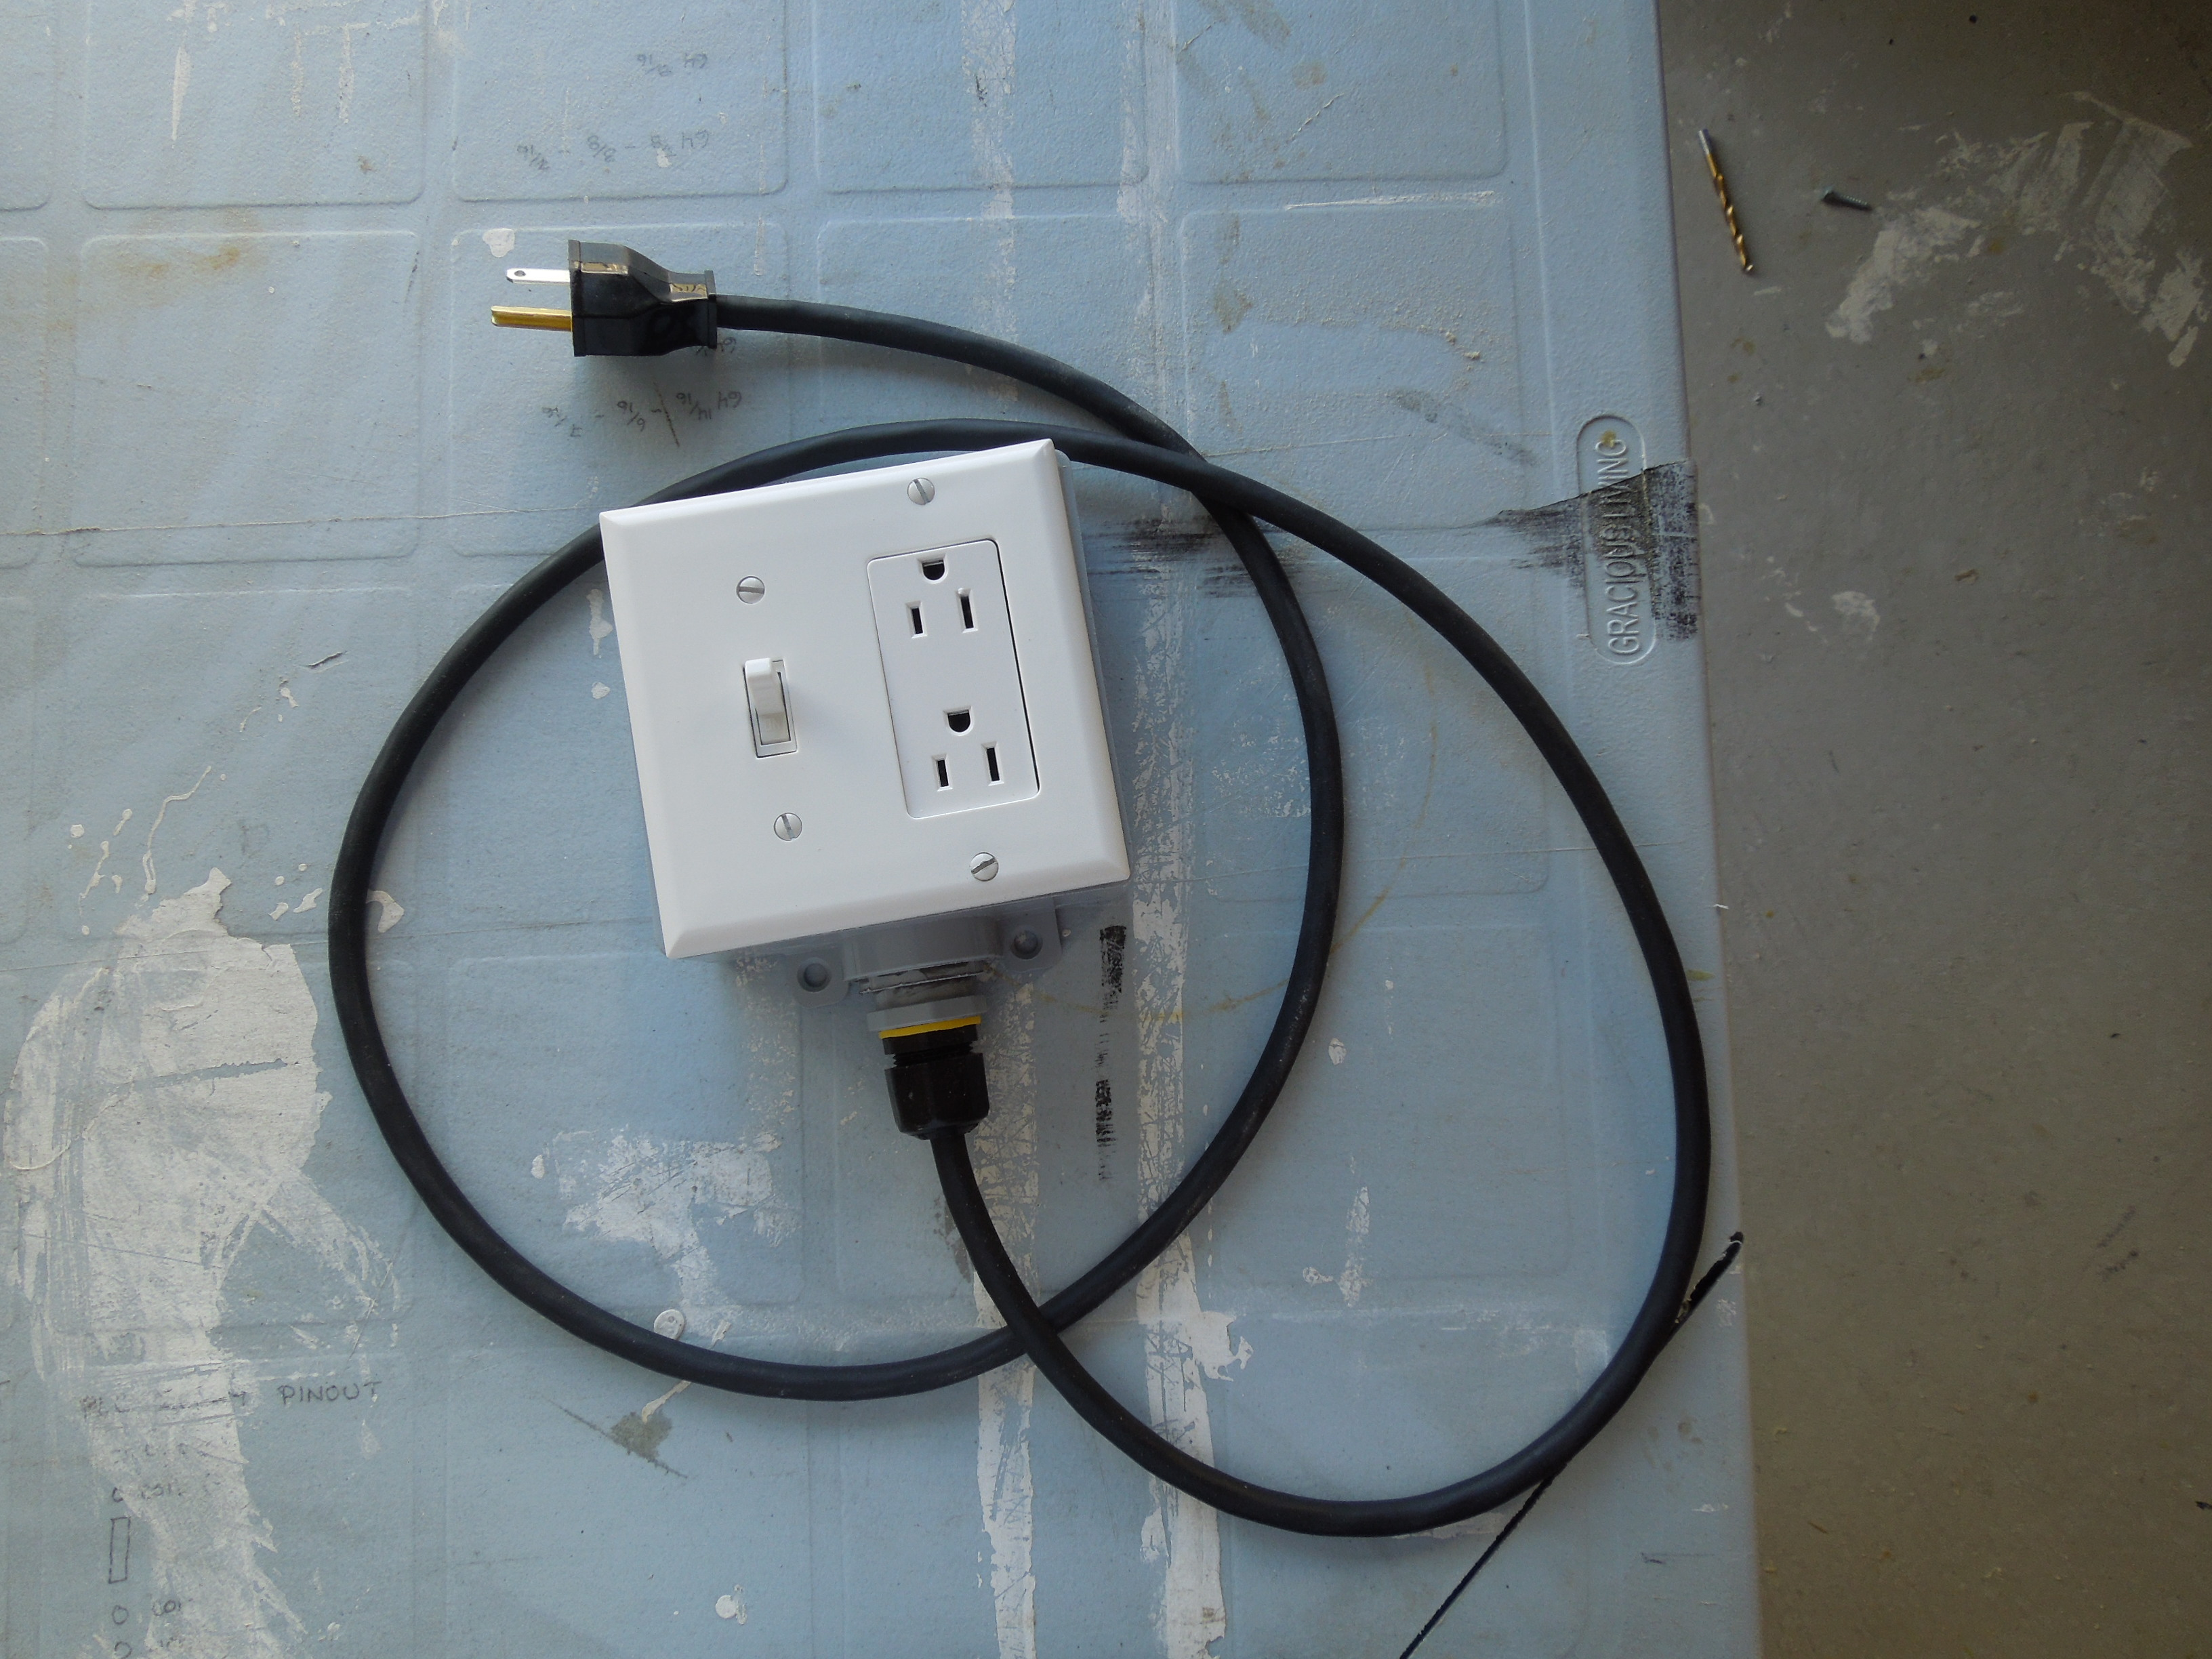 DIY Extension Cord With Built in Switch - Safe, Quick and Simple